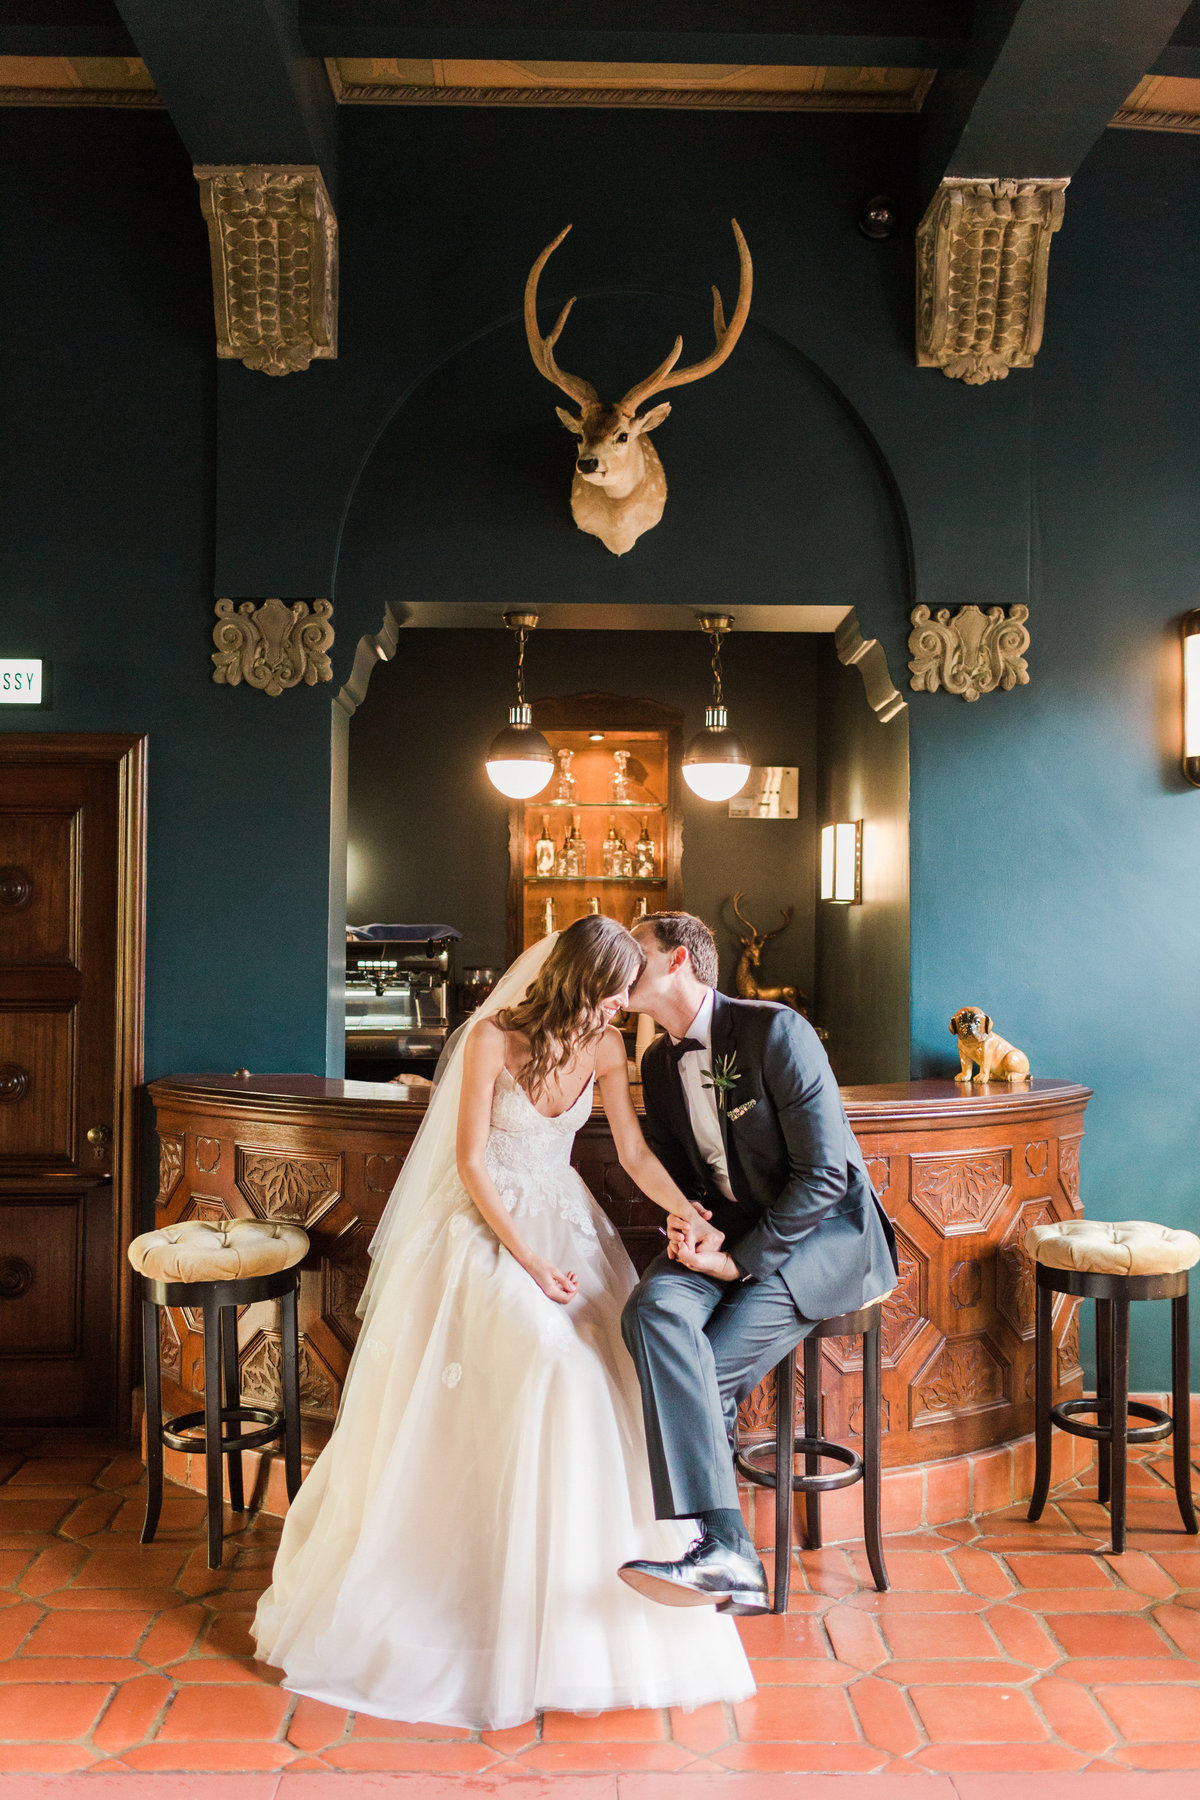 Palihouse_Cielo_Farms_Malibu_Rustic_Wedding_Valorie_Darling_Photography - 31 of 107